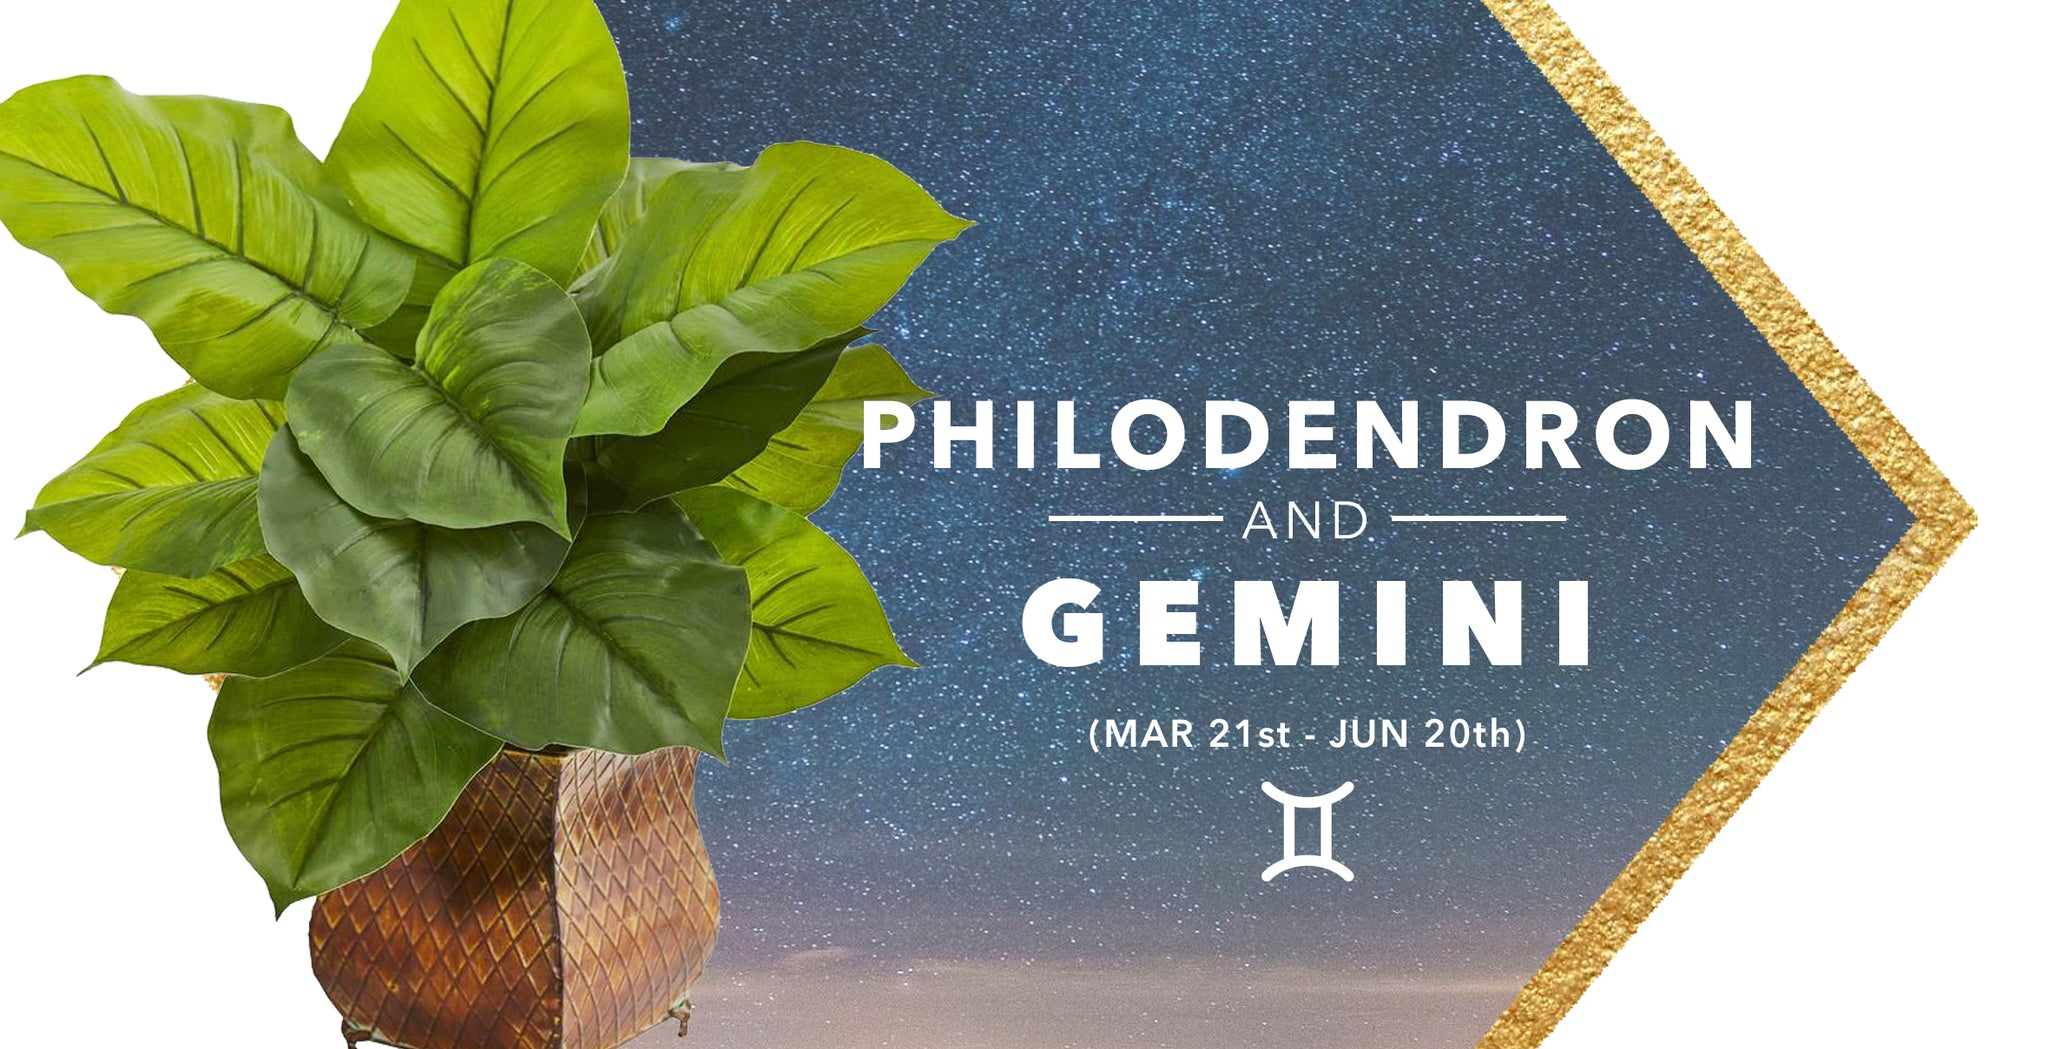 SILK PHILODENDRON PLANTS & GEMINI